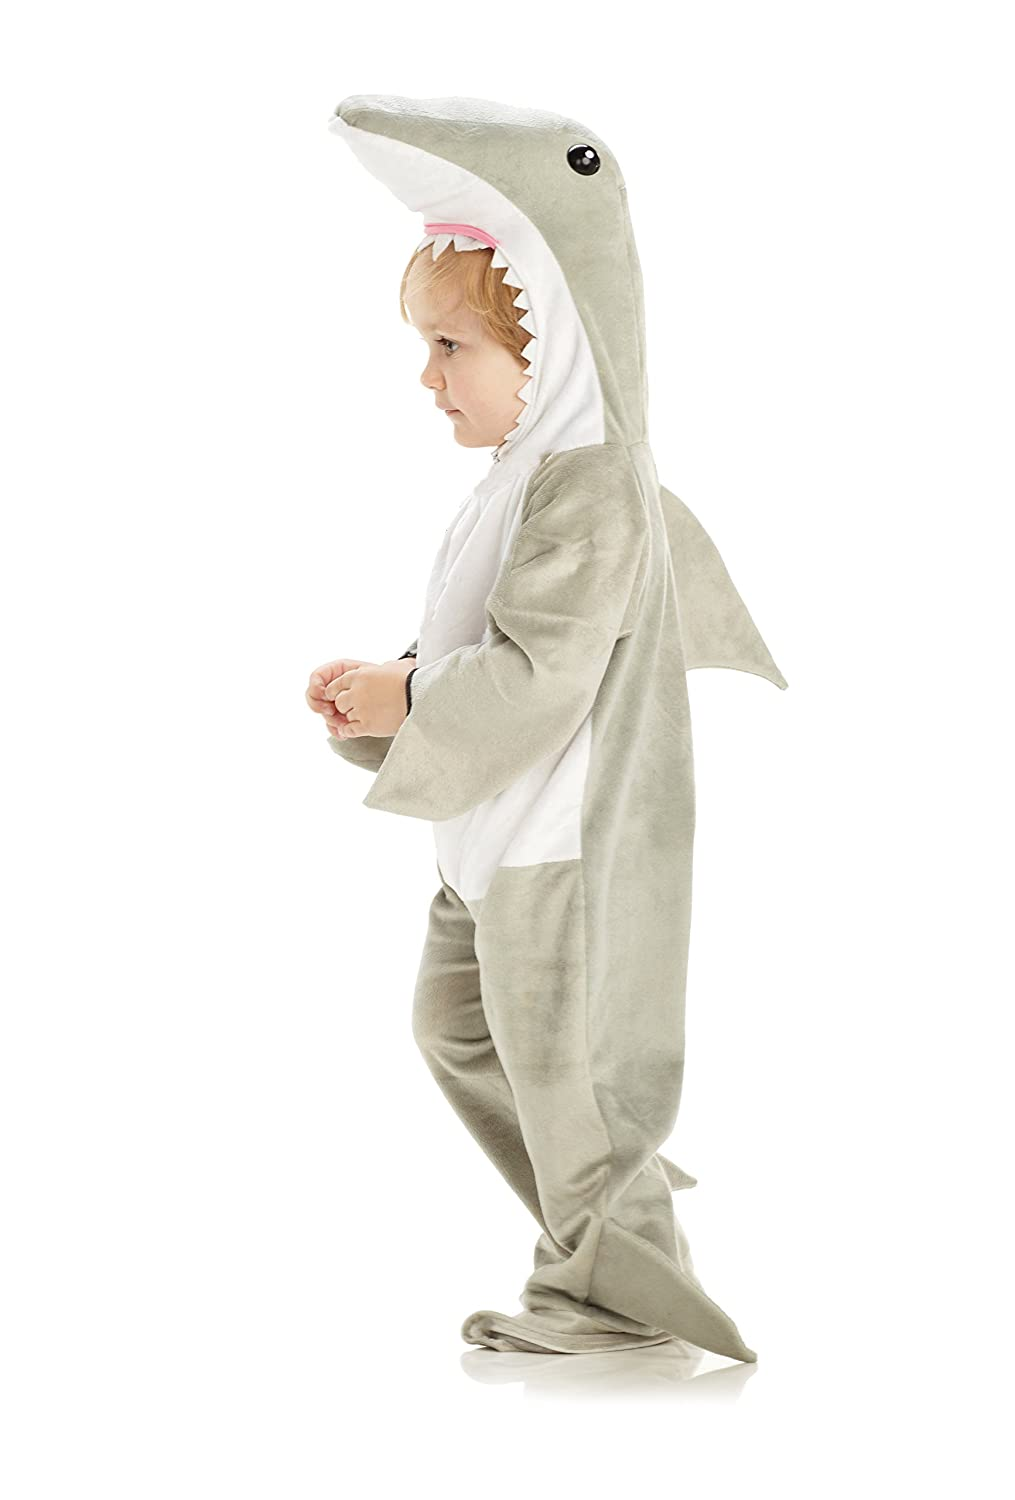 Underwraps Baby's Shark Underwraps Baby's Shark Underwraps Child code